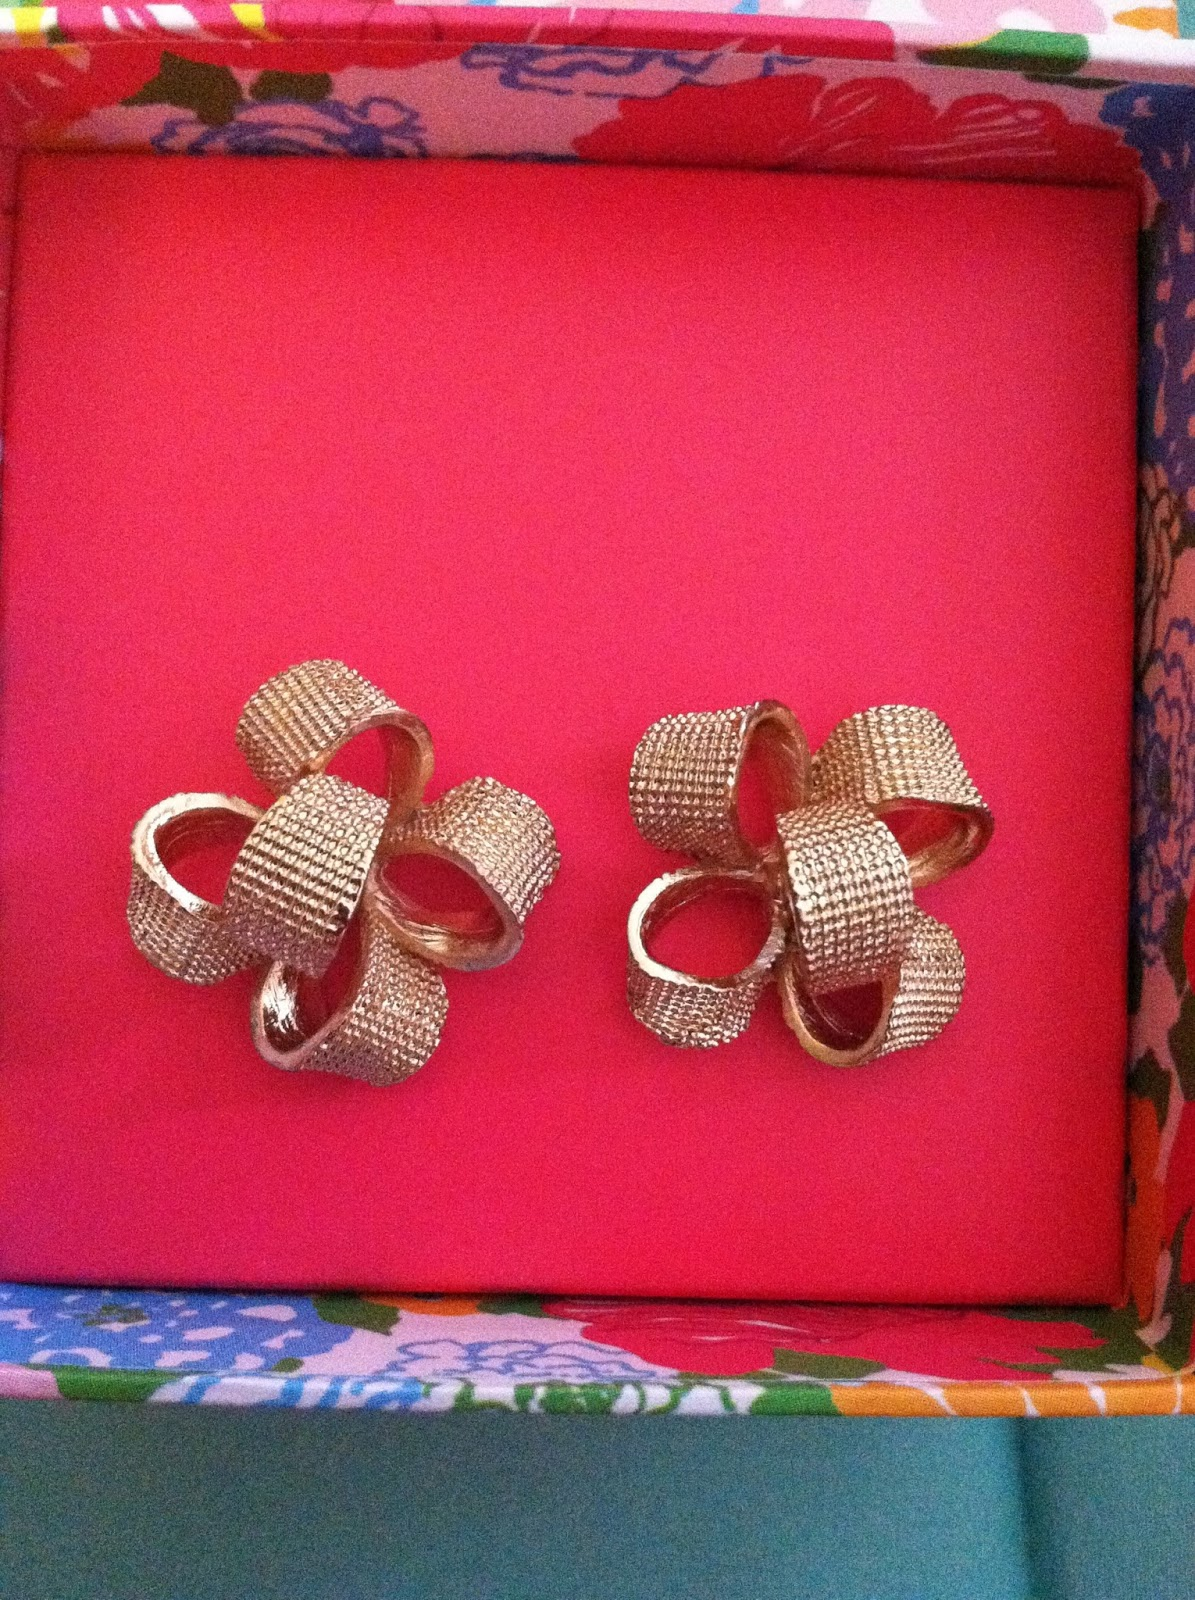 I Originally Wanted These Lilly Pulitzer Gold Bow Earrings For Christmas,  But Santa Made A Mistake And Got Me The Pink Ones Instead